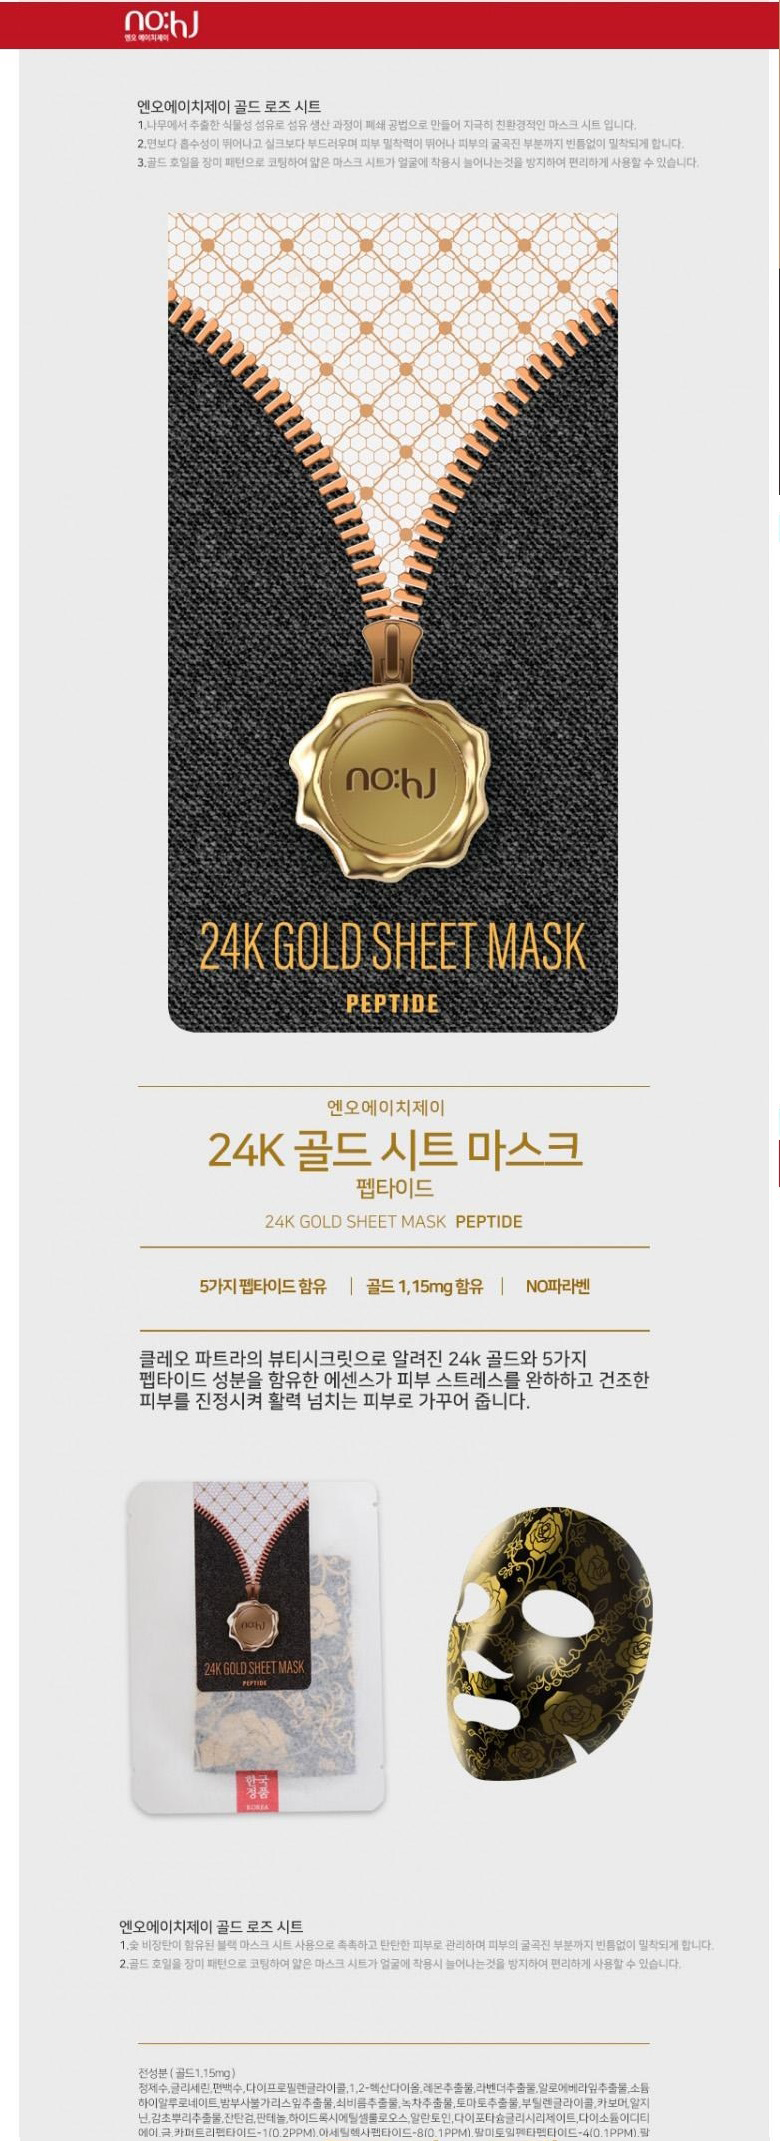 NOHJ 24K Gold Sheet Mask Peptide 0.91oz(26g)